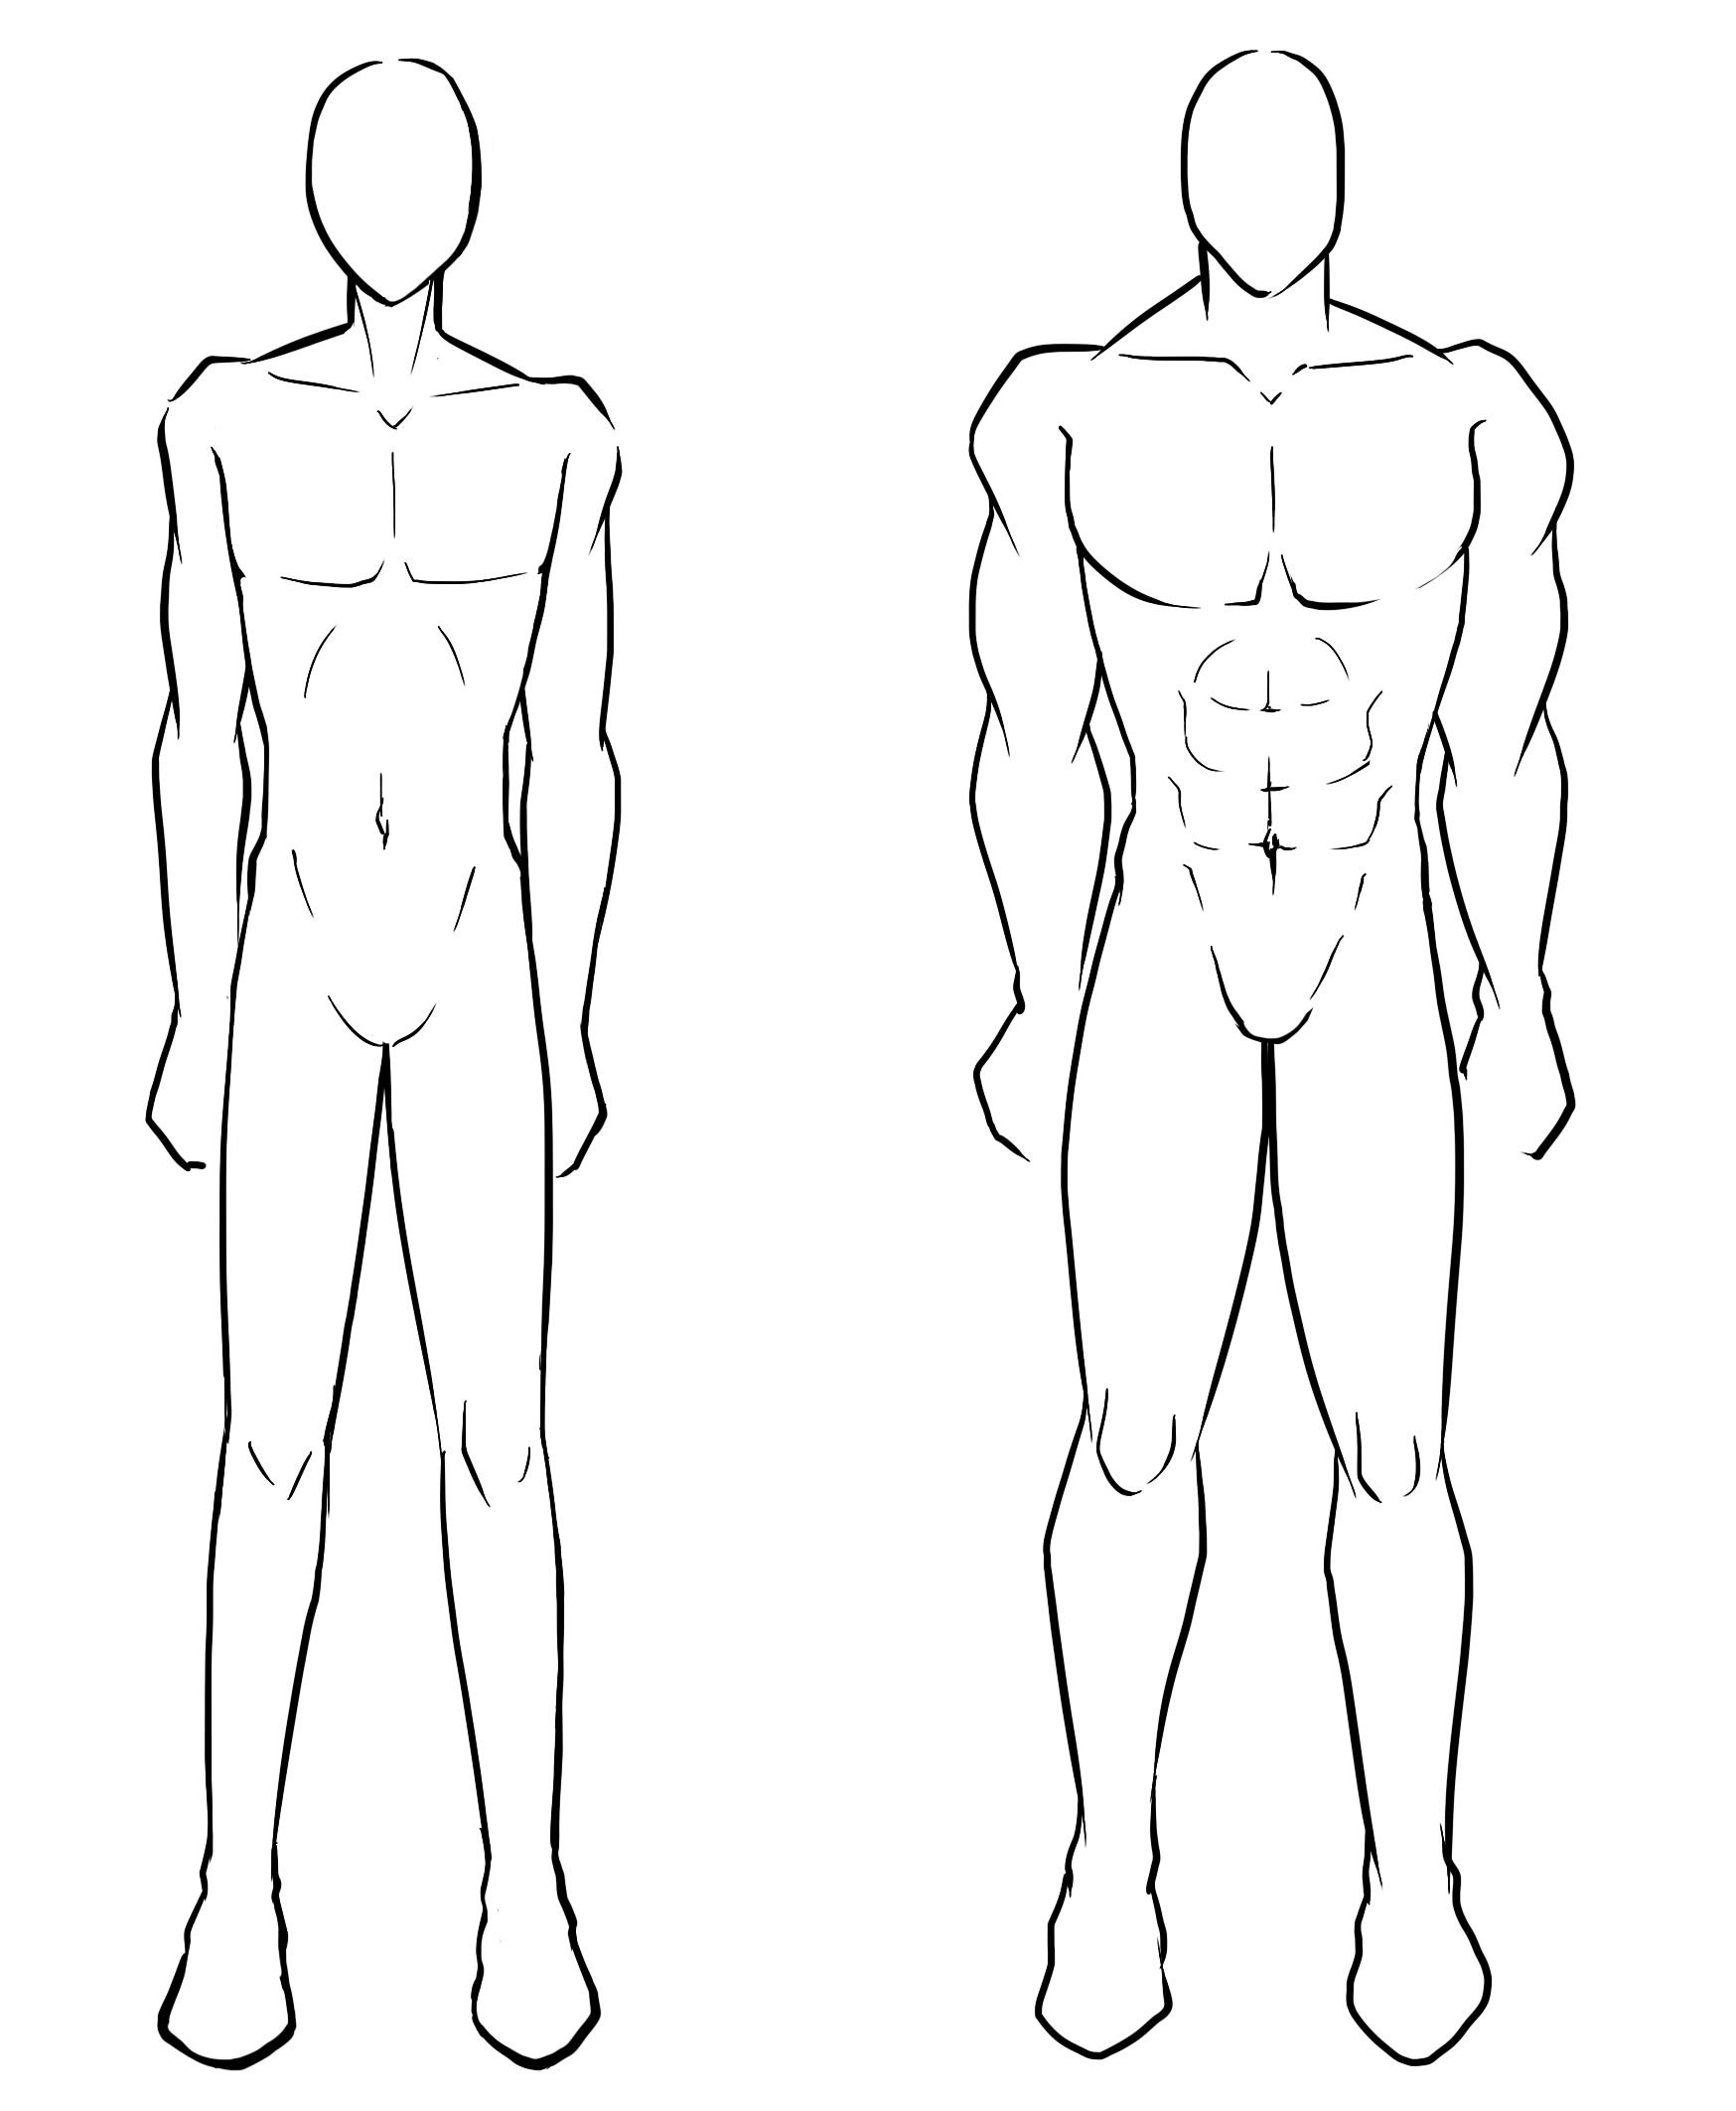 How To Draw Anime Body Male : anime, Drawing, Manga, Anime, Bodies,, Drawing,